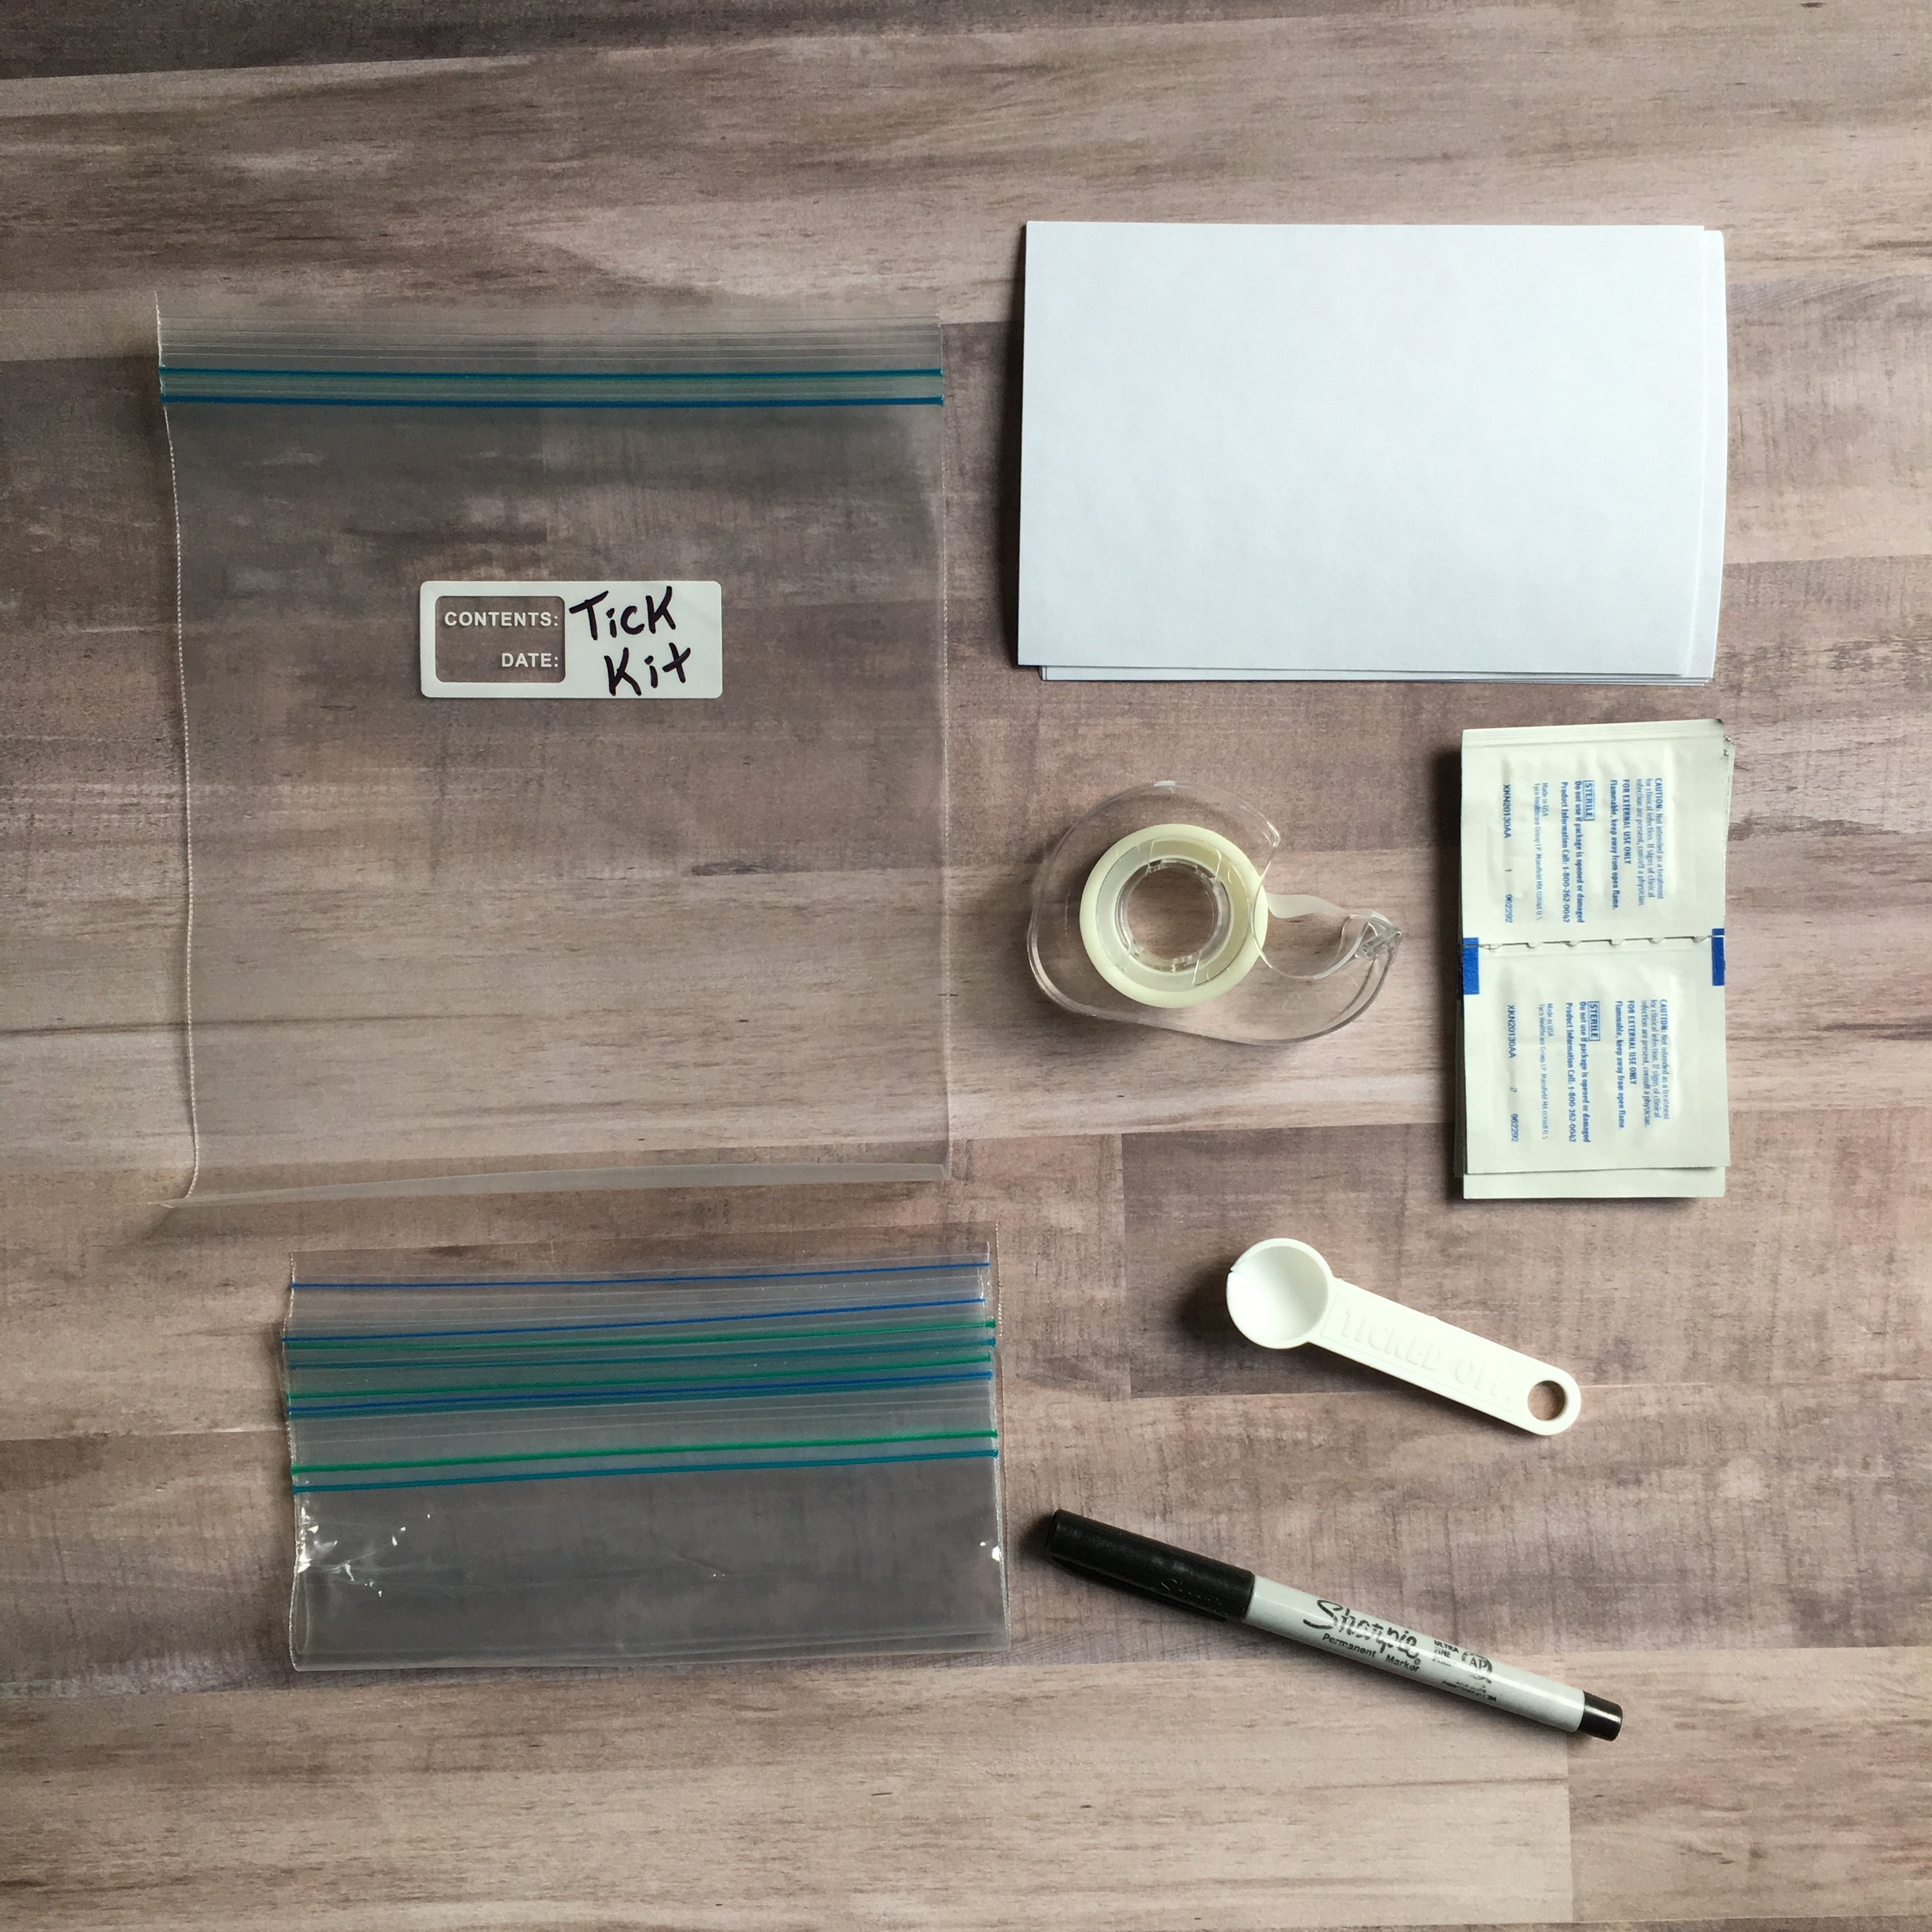 Items for a Tick Kit